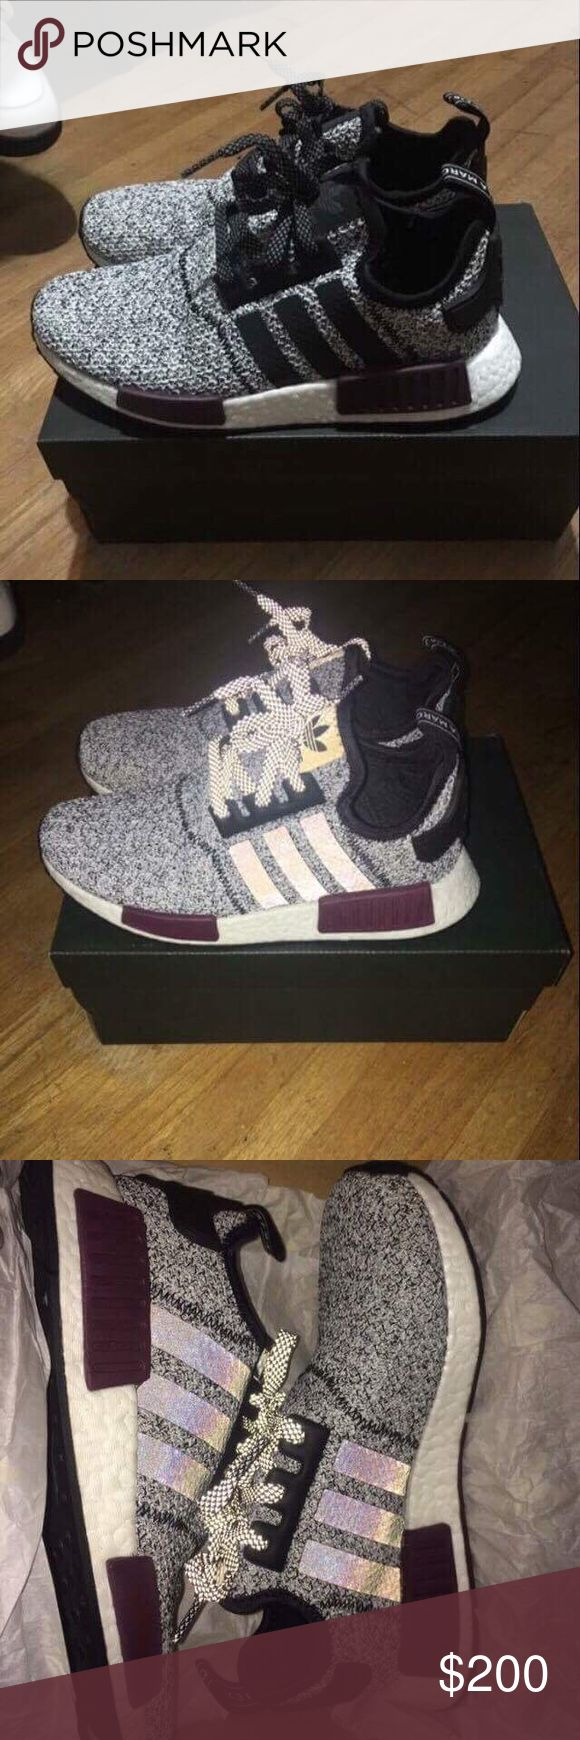 NMD adidas shoes •Women •Size 6.5 •Runs big •Only worn twice •They were 95$ when first came out but now they are 250$ on flight club      *Good Deal*  (SERIOUS BUYERS ONLY) Adidas Shoes Sneakers